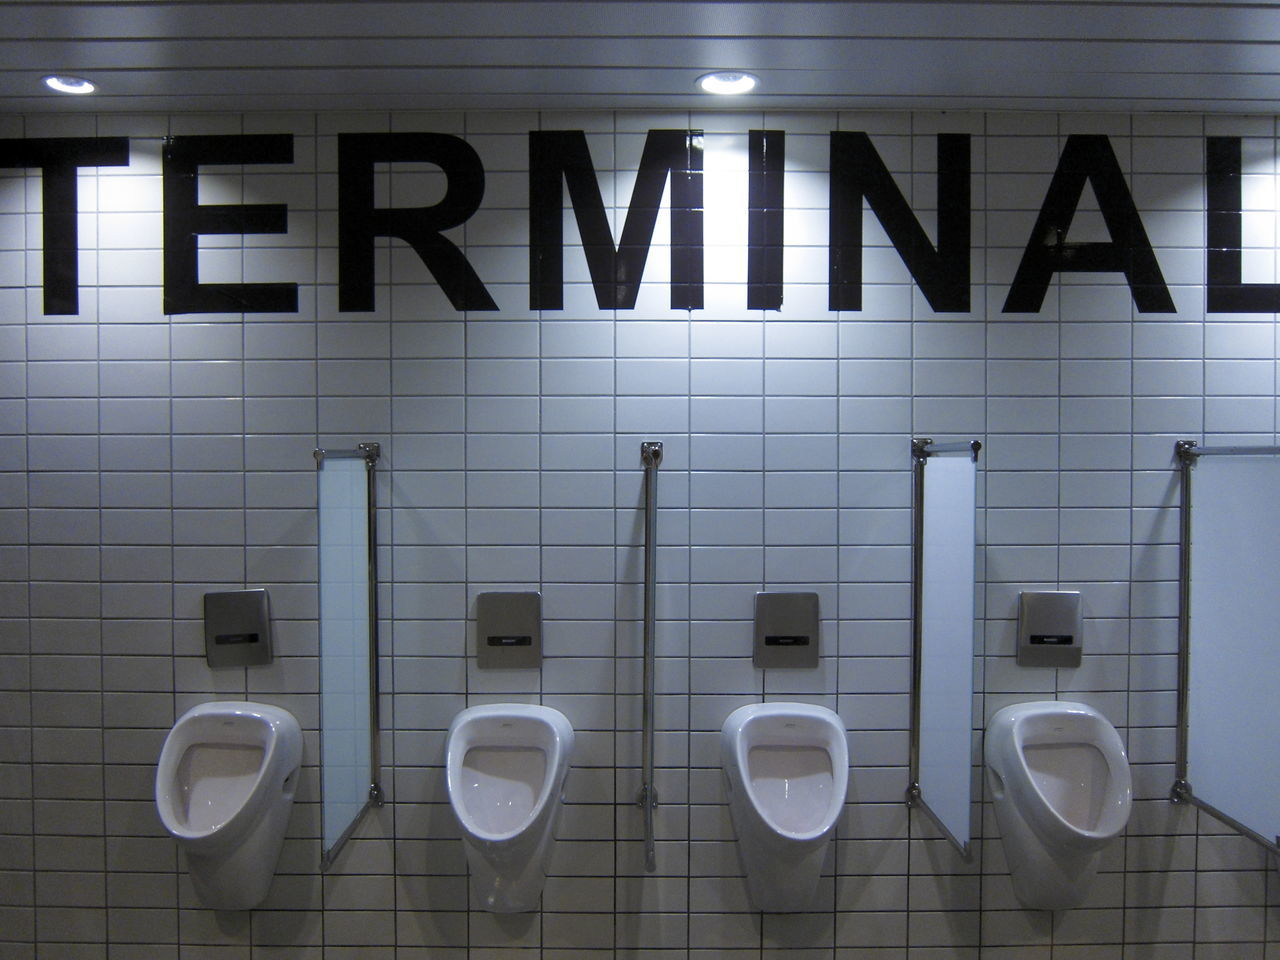 Bathroom Division Earthenware Glass Glass Division Glass Separation Hygiene Indoors  No People Separation Terminal Tile Tile Wall Tiled Floor Tiled Wall Tiles Toilets Urinal Urinals Wc White White Color White Tiles